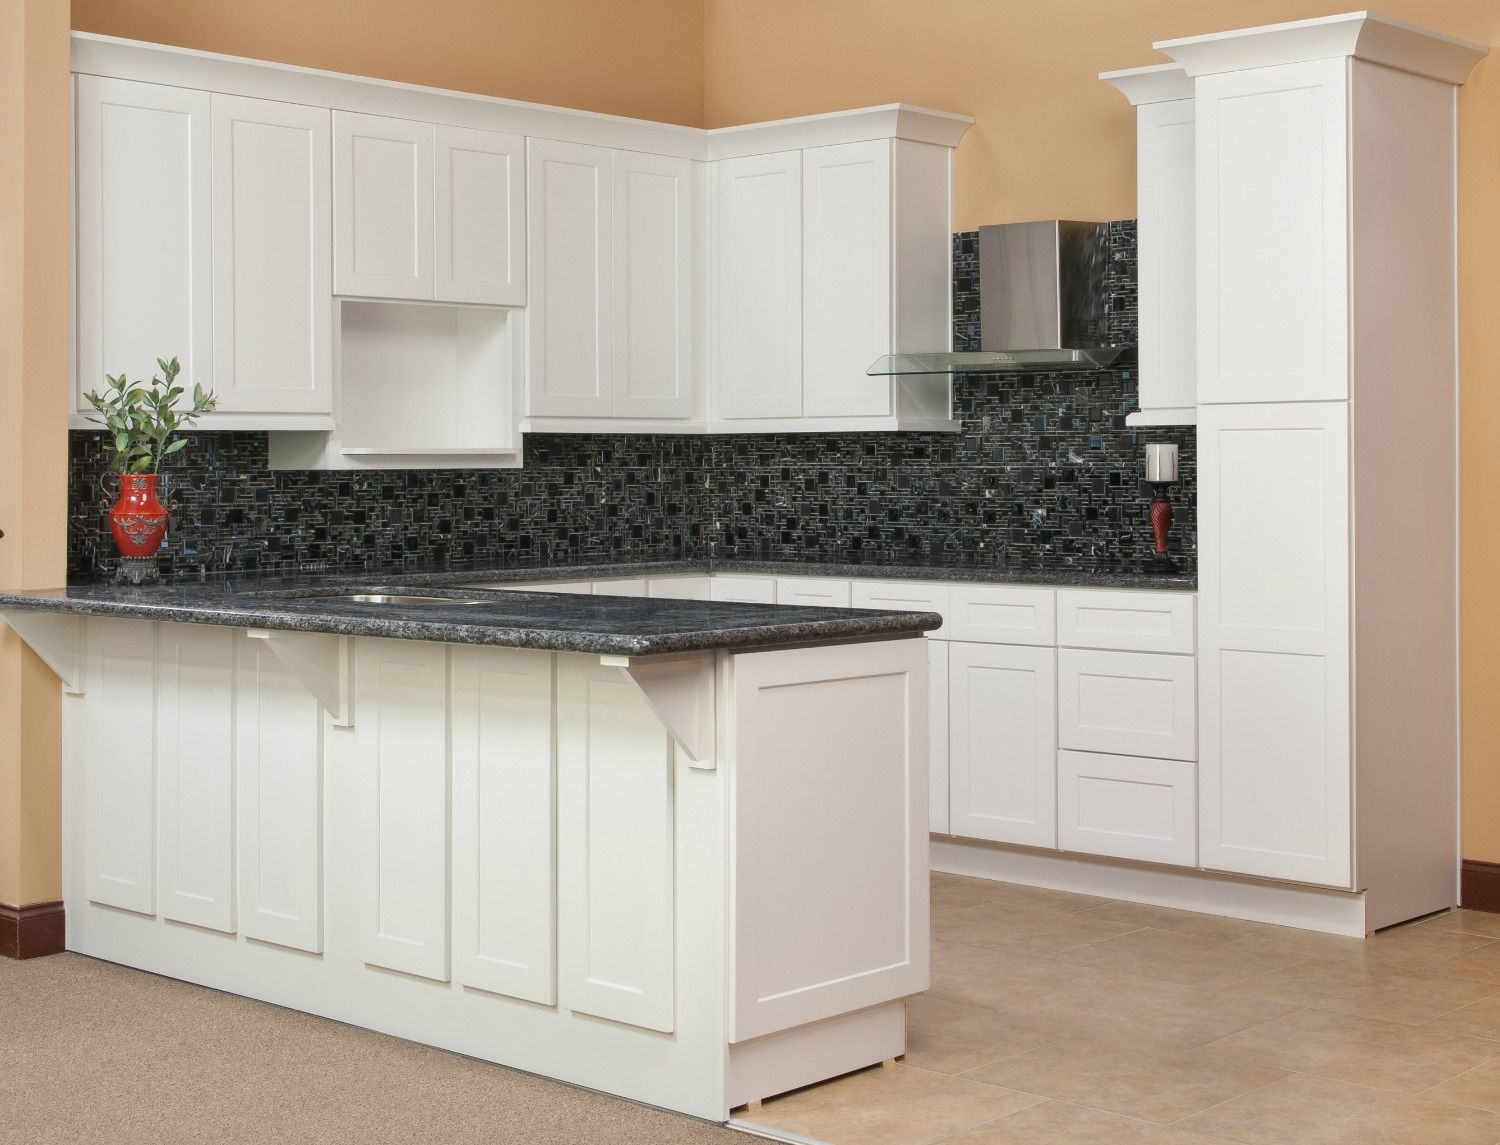 Kitchen of the day brilliant white shaker rta kitchen for Cabinet kitchen cabinet